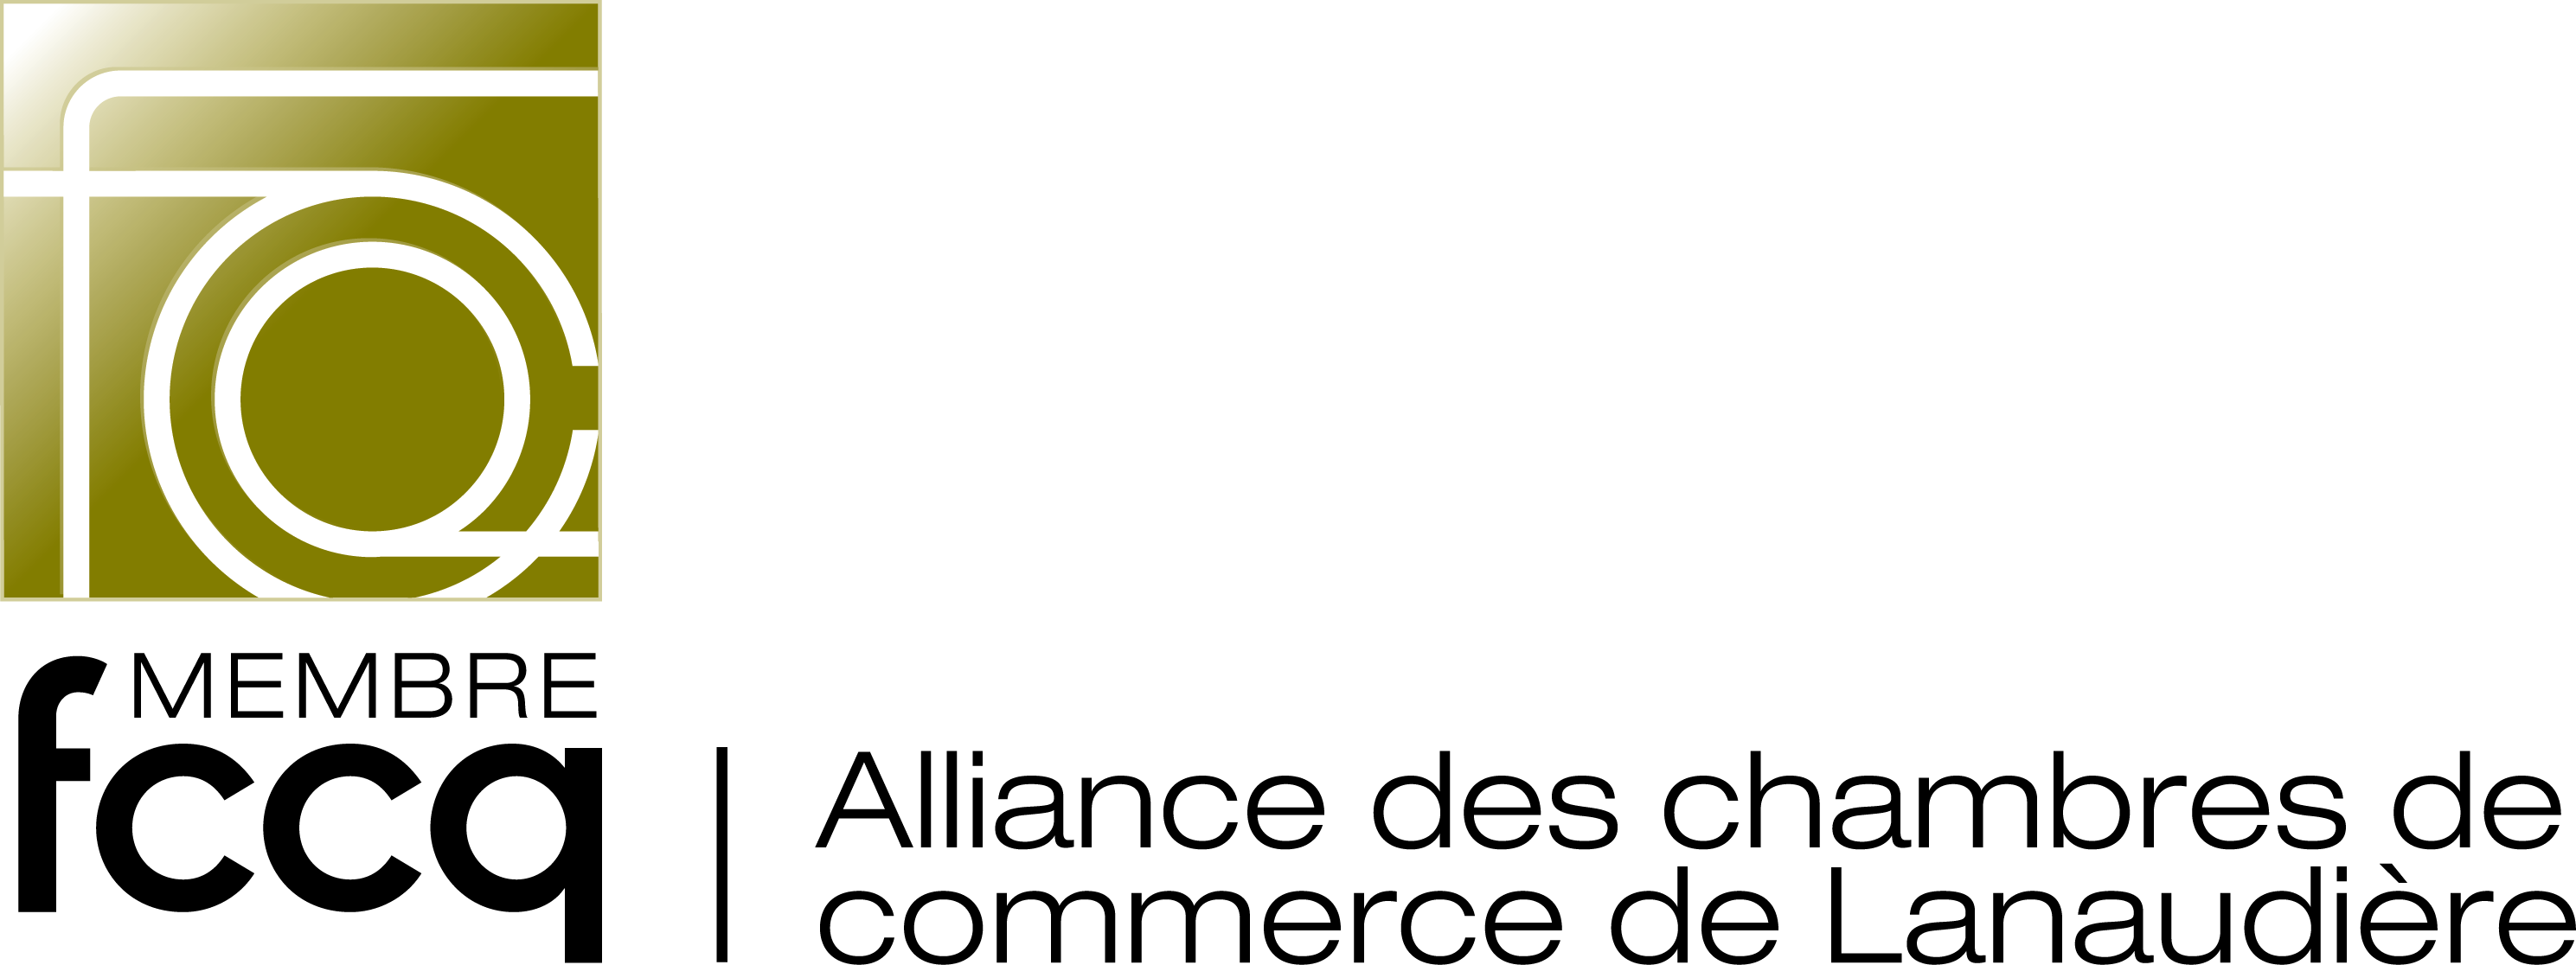 Alliance des chambres de commerce de lanaudi re chambre de commerce brandon for Chambre de commerce de maniwaki